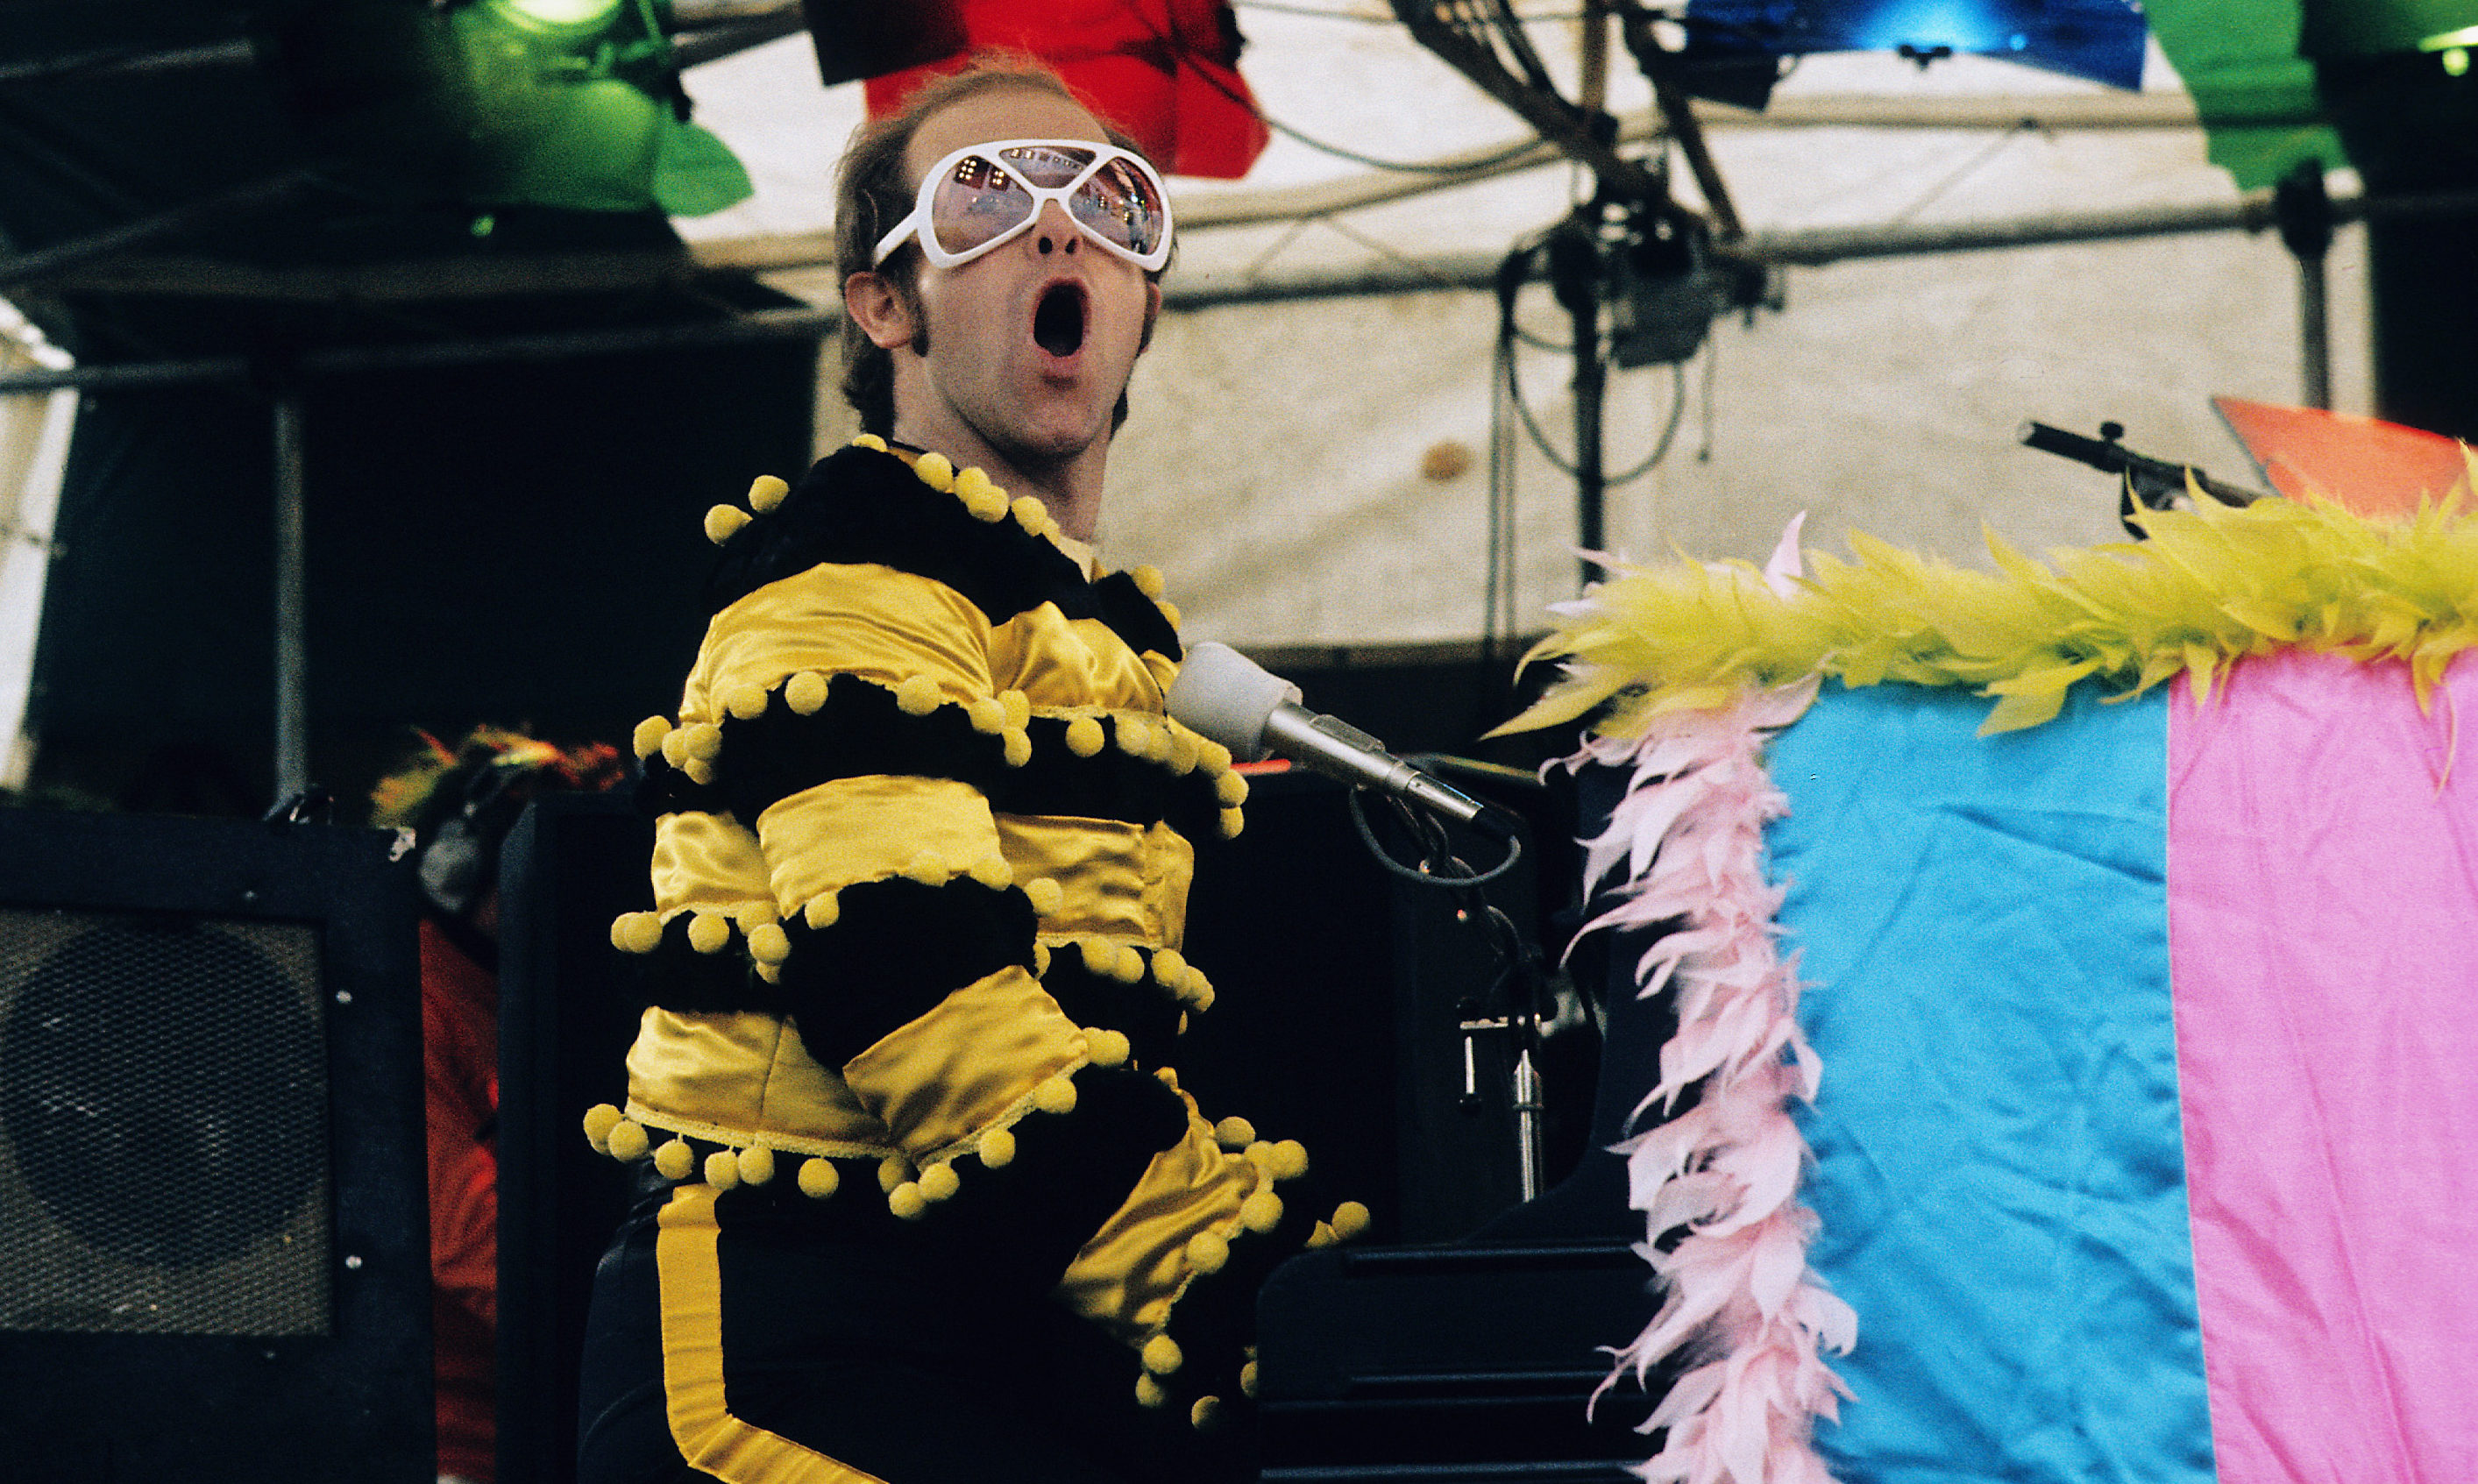 Elton John performs at an open-air concert in May 1974 in Watford, England.